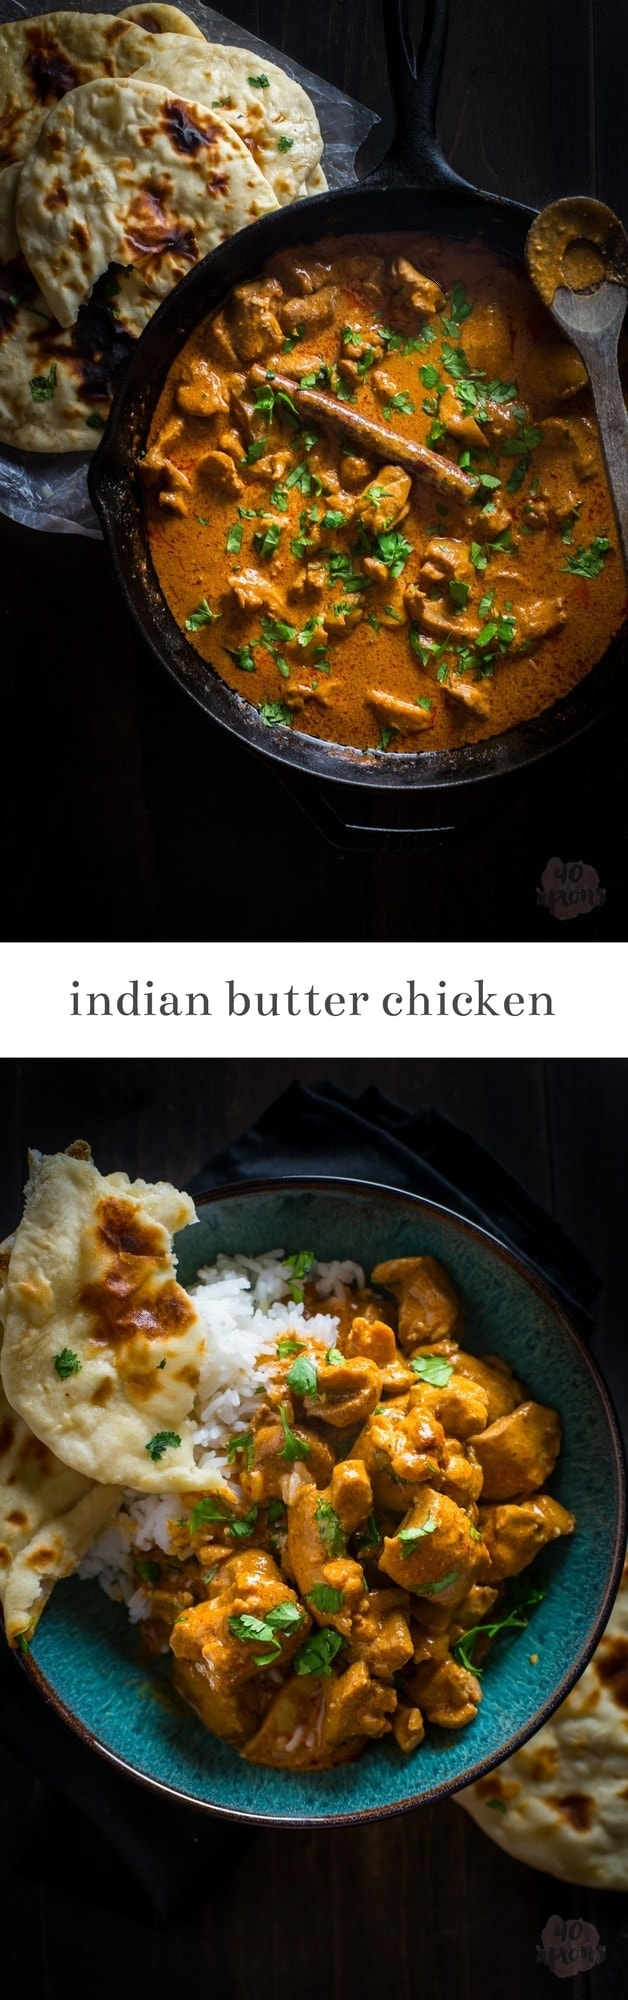 Rich, flavorful Indian butter chicken. So good, and clean eating, too!